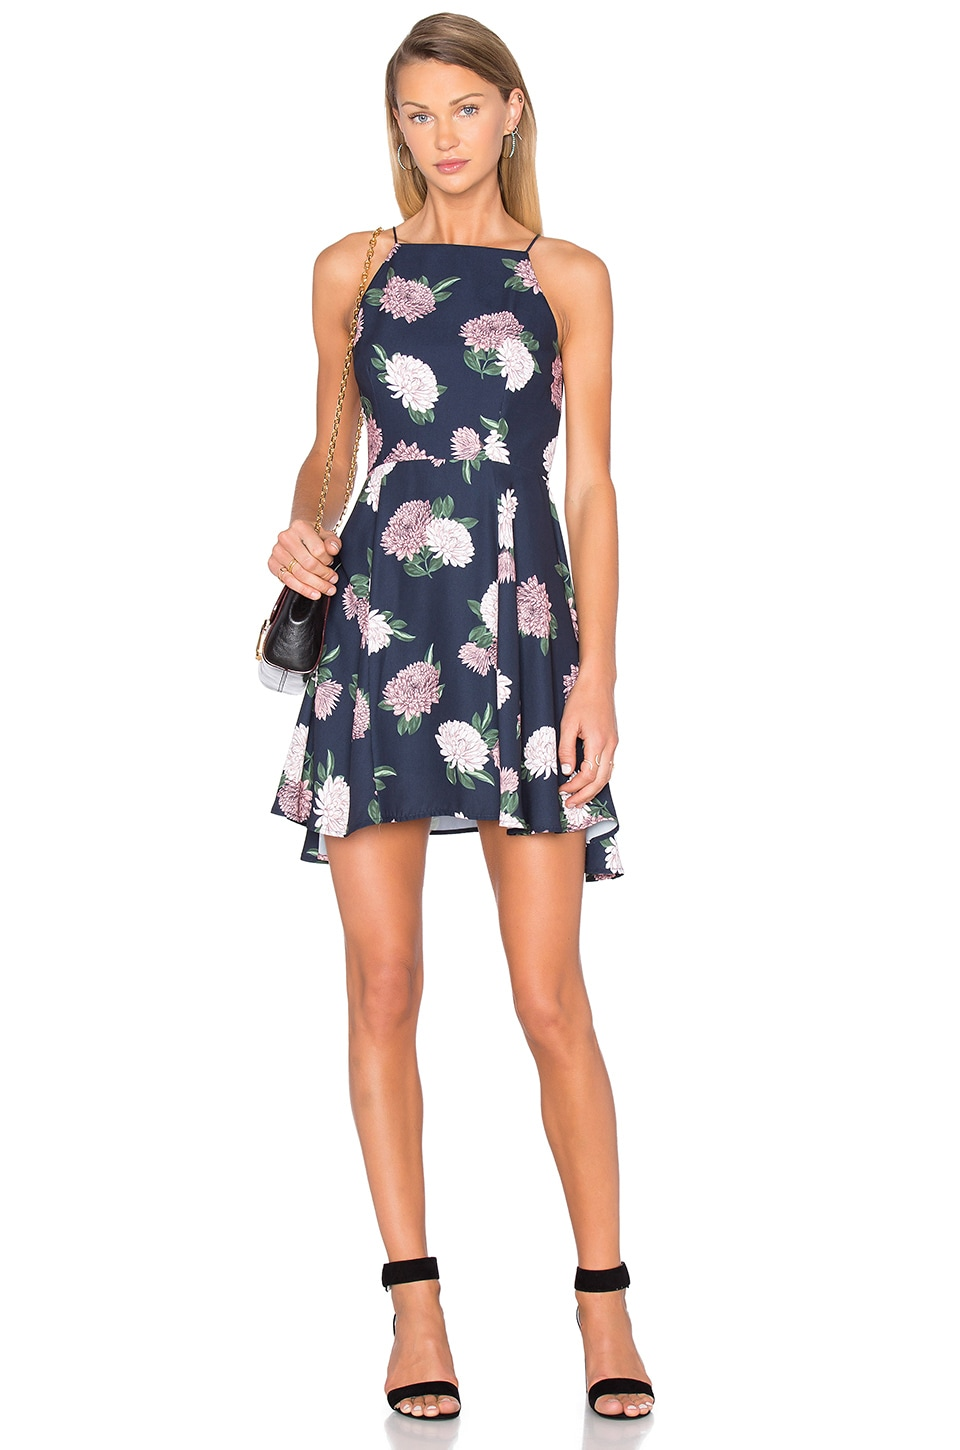 keepsake Up For Air Dress in Navy Floral